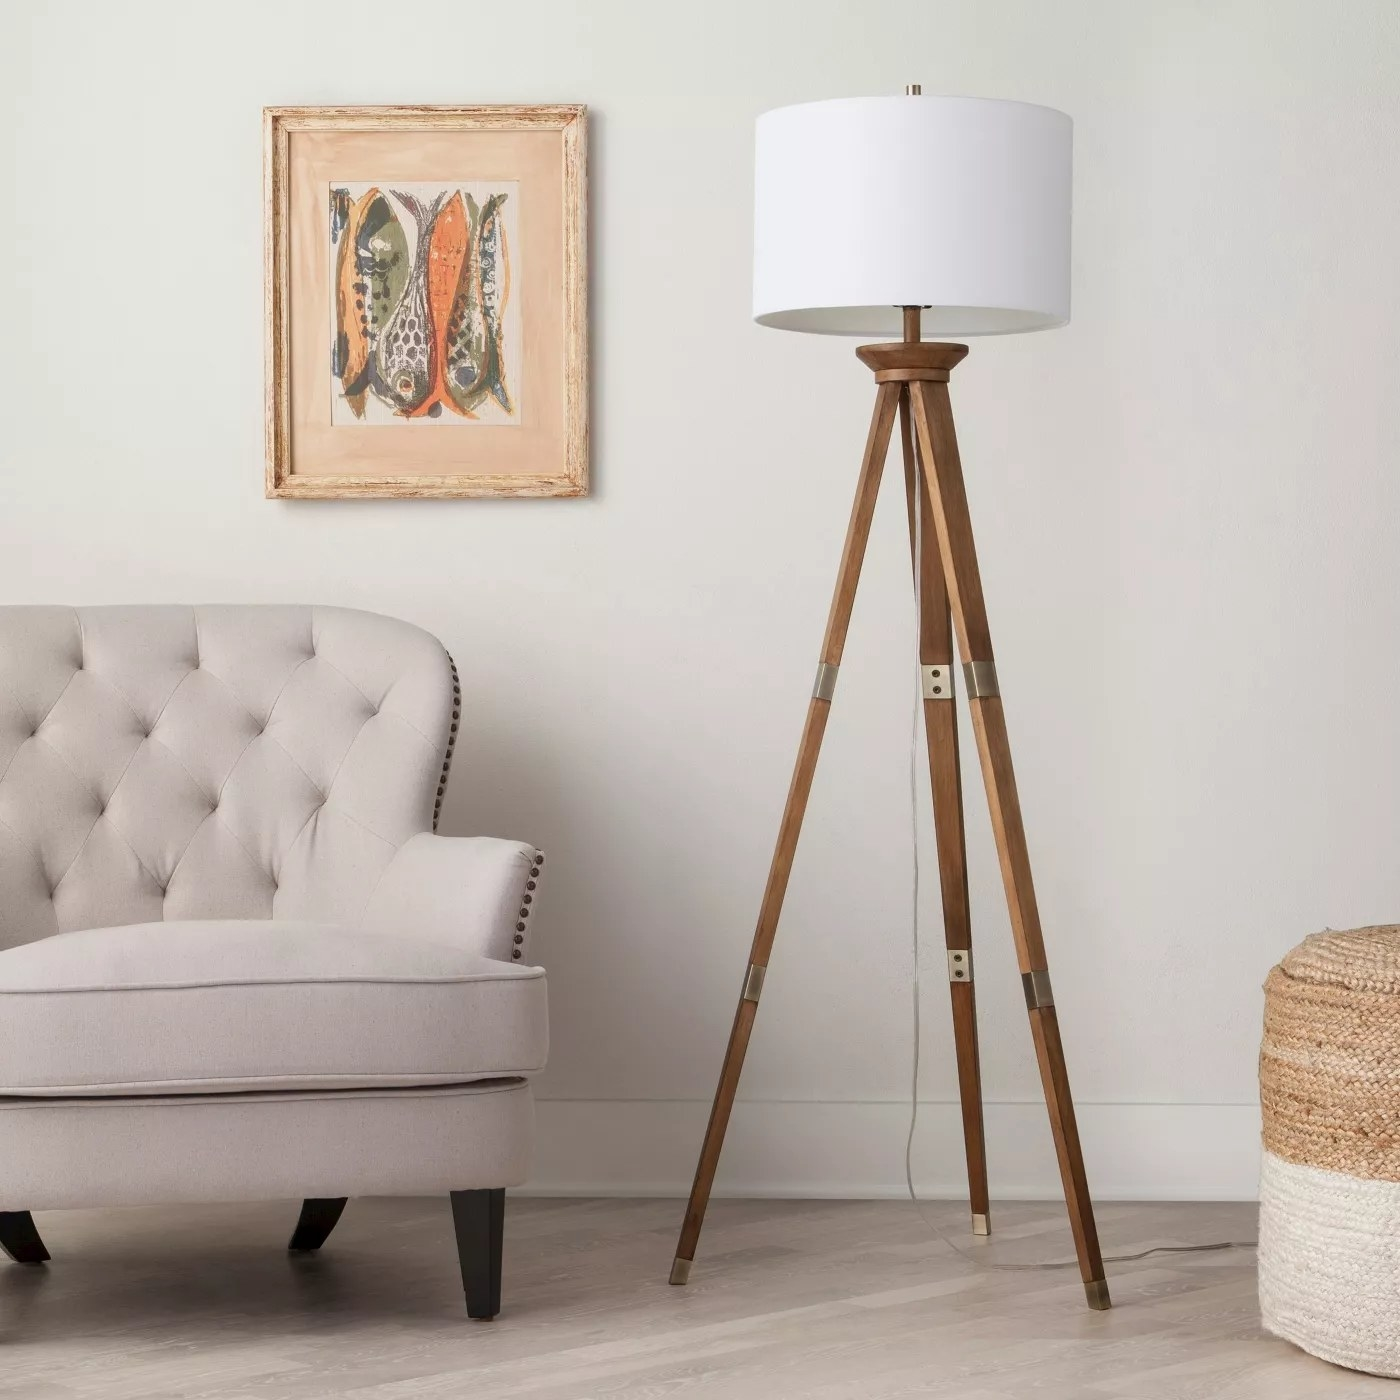 The tripod lamp with a round white lamp shade in a living room